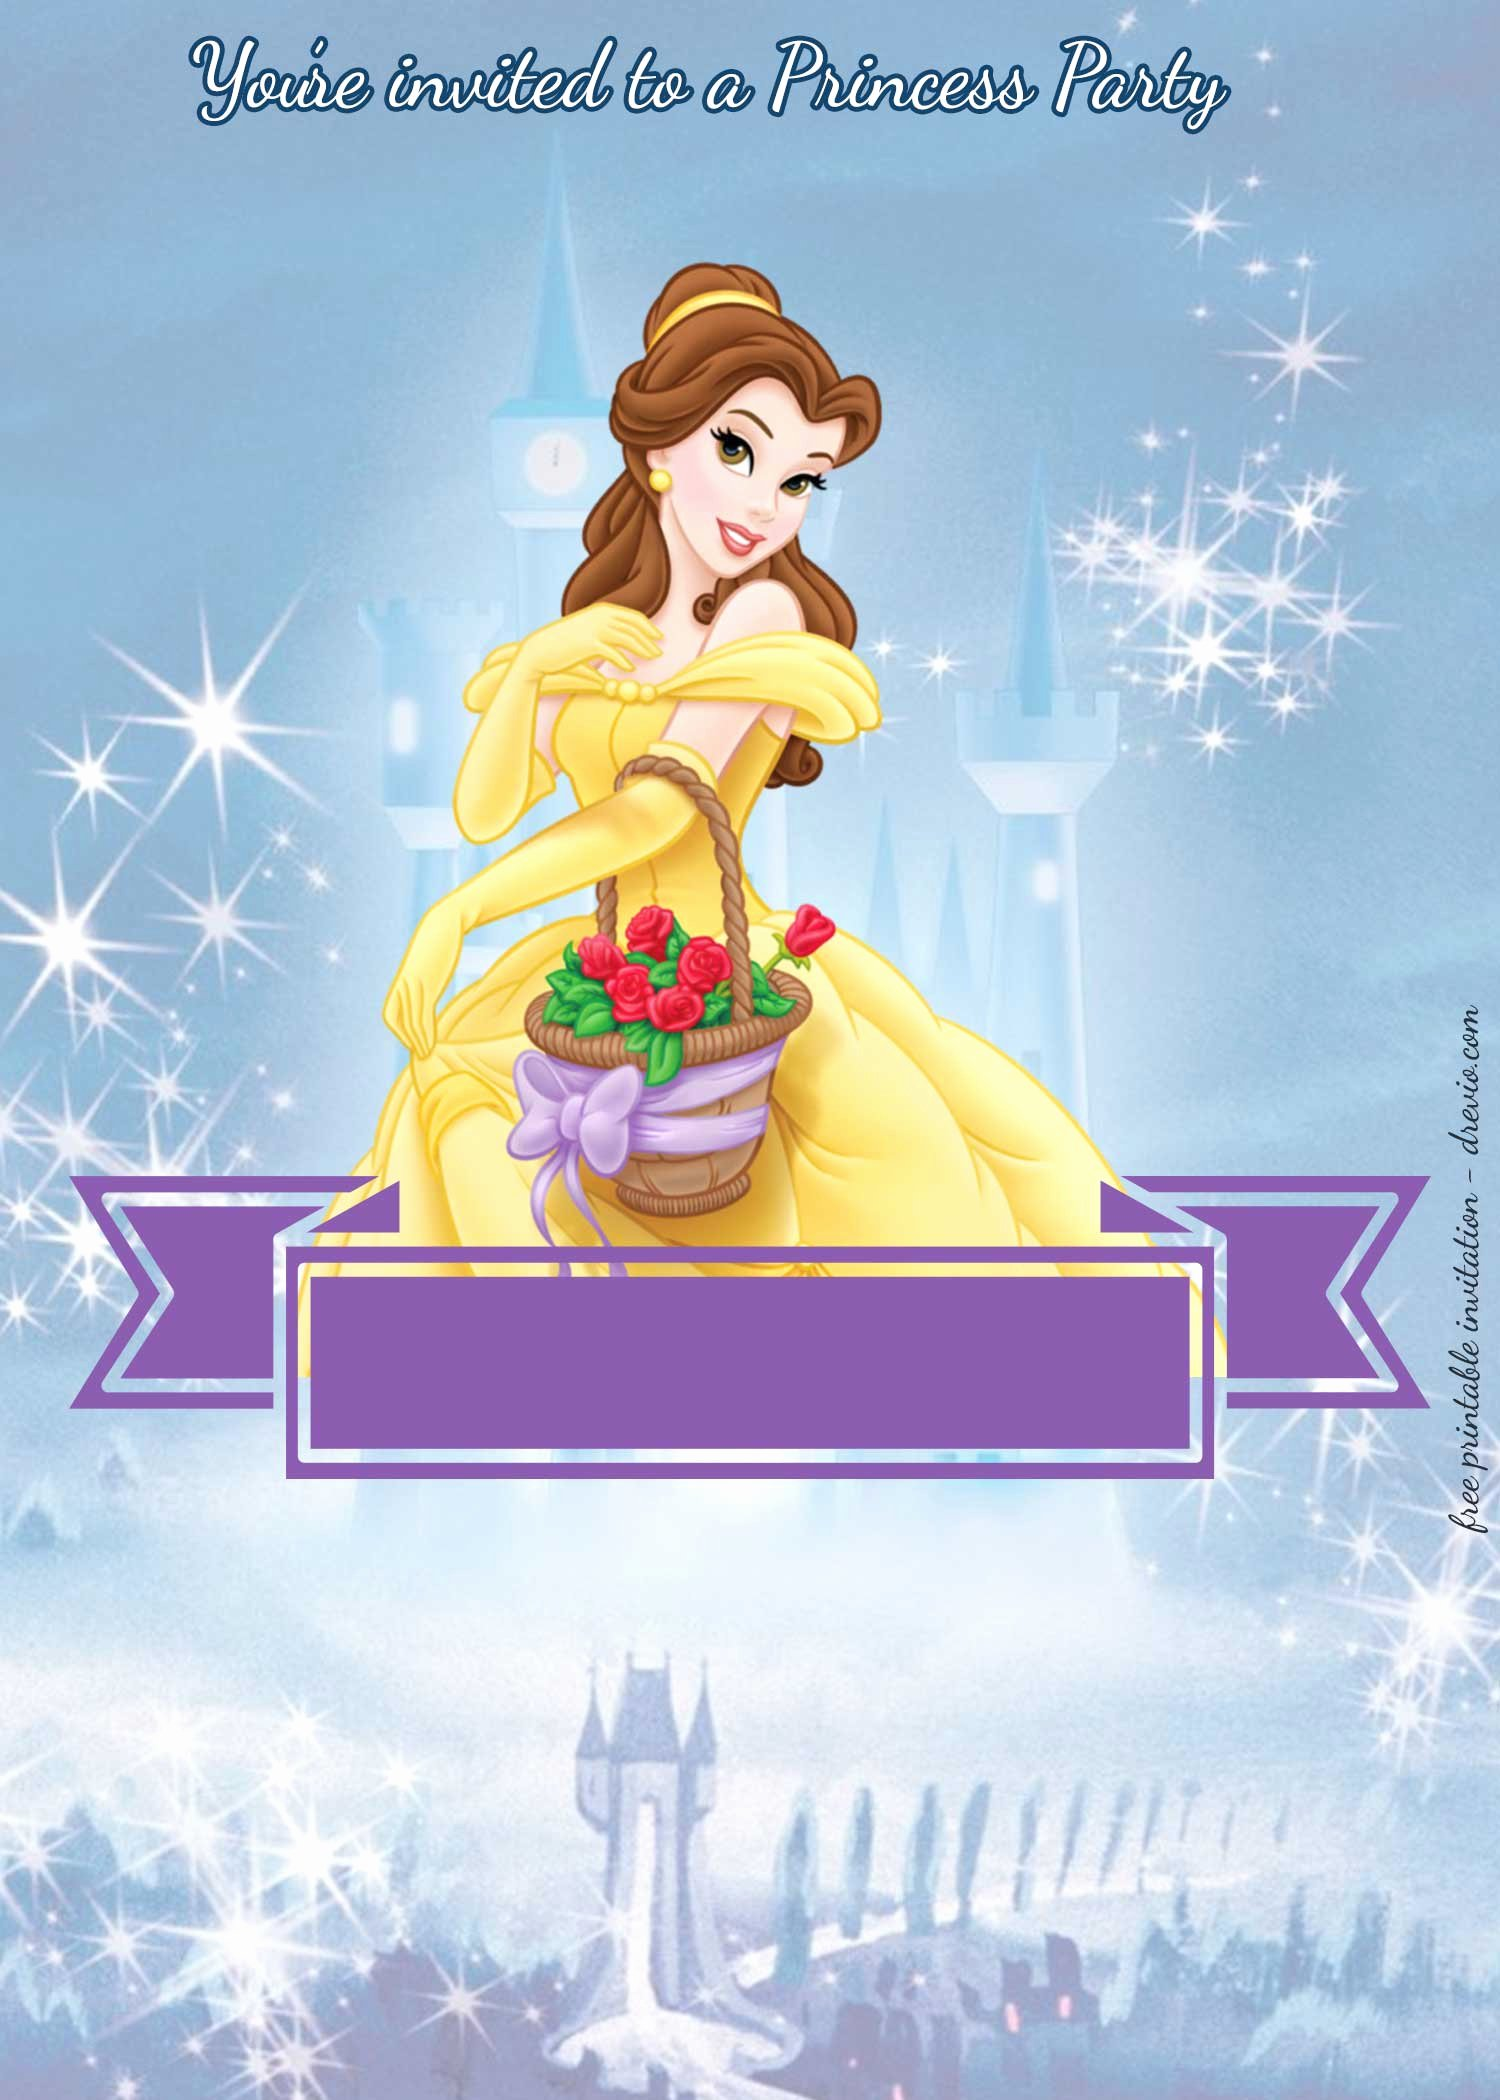 Princess Party Invitation Template Lovely Free Princess Party Birthday Invitation Templates